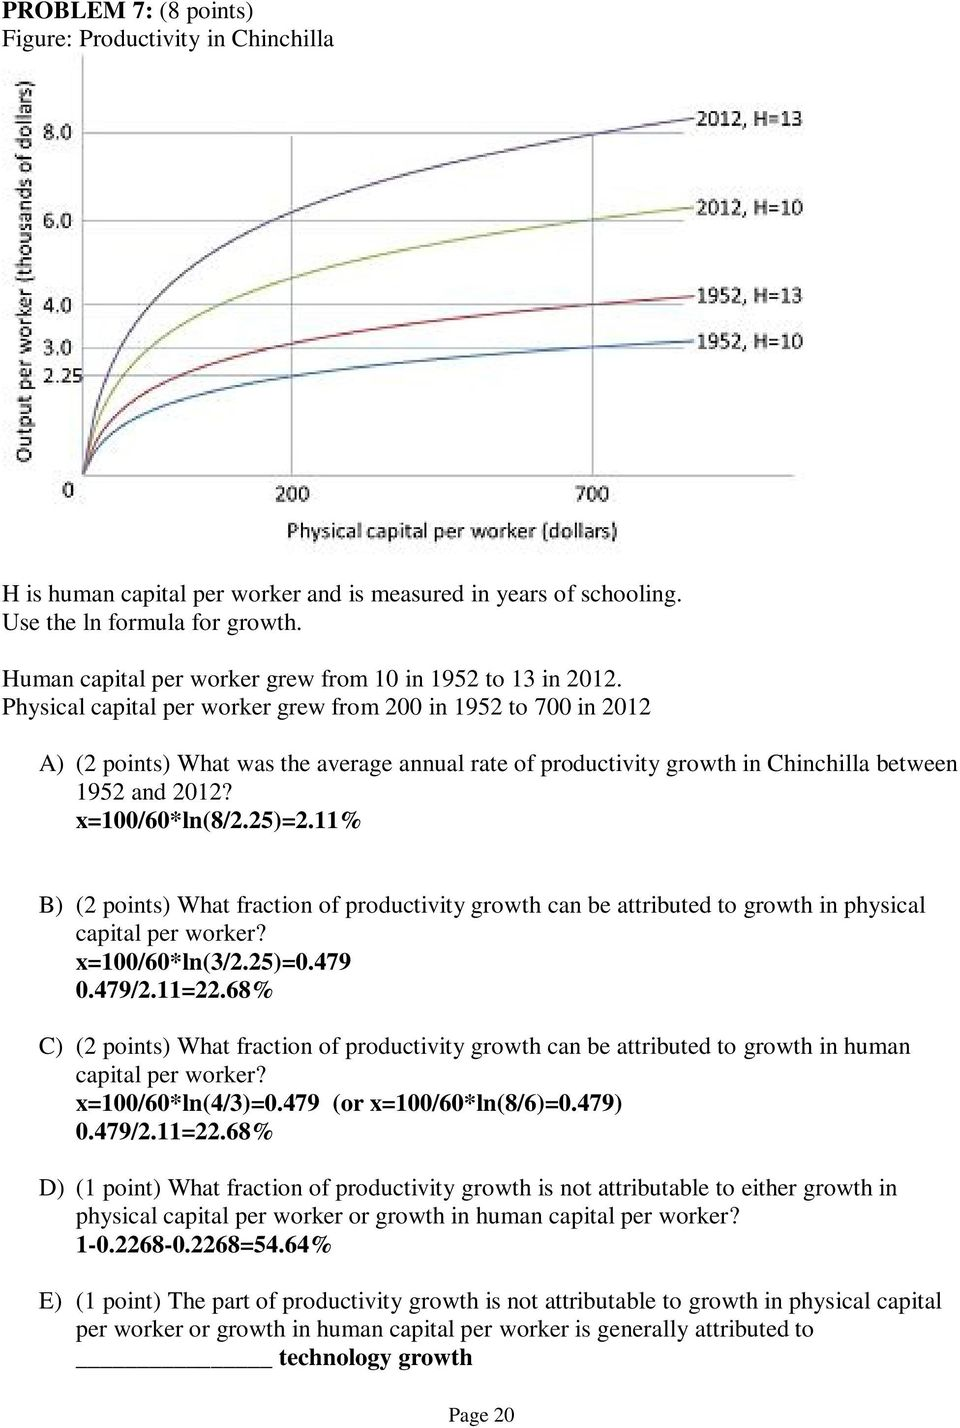 Physical capital per worker grew from 200 in 1952 to 700 in 2012 A) (2 points) What was the average annual rate of productivity growth in Chinchilla between 1952 and 2012? x=100/60*ln(8/2.25)=2.